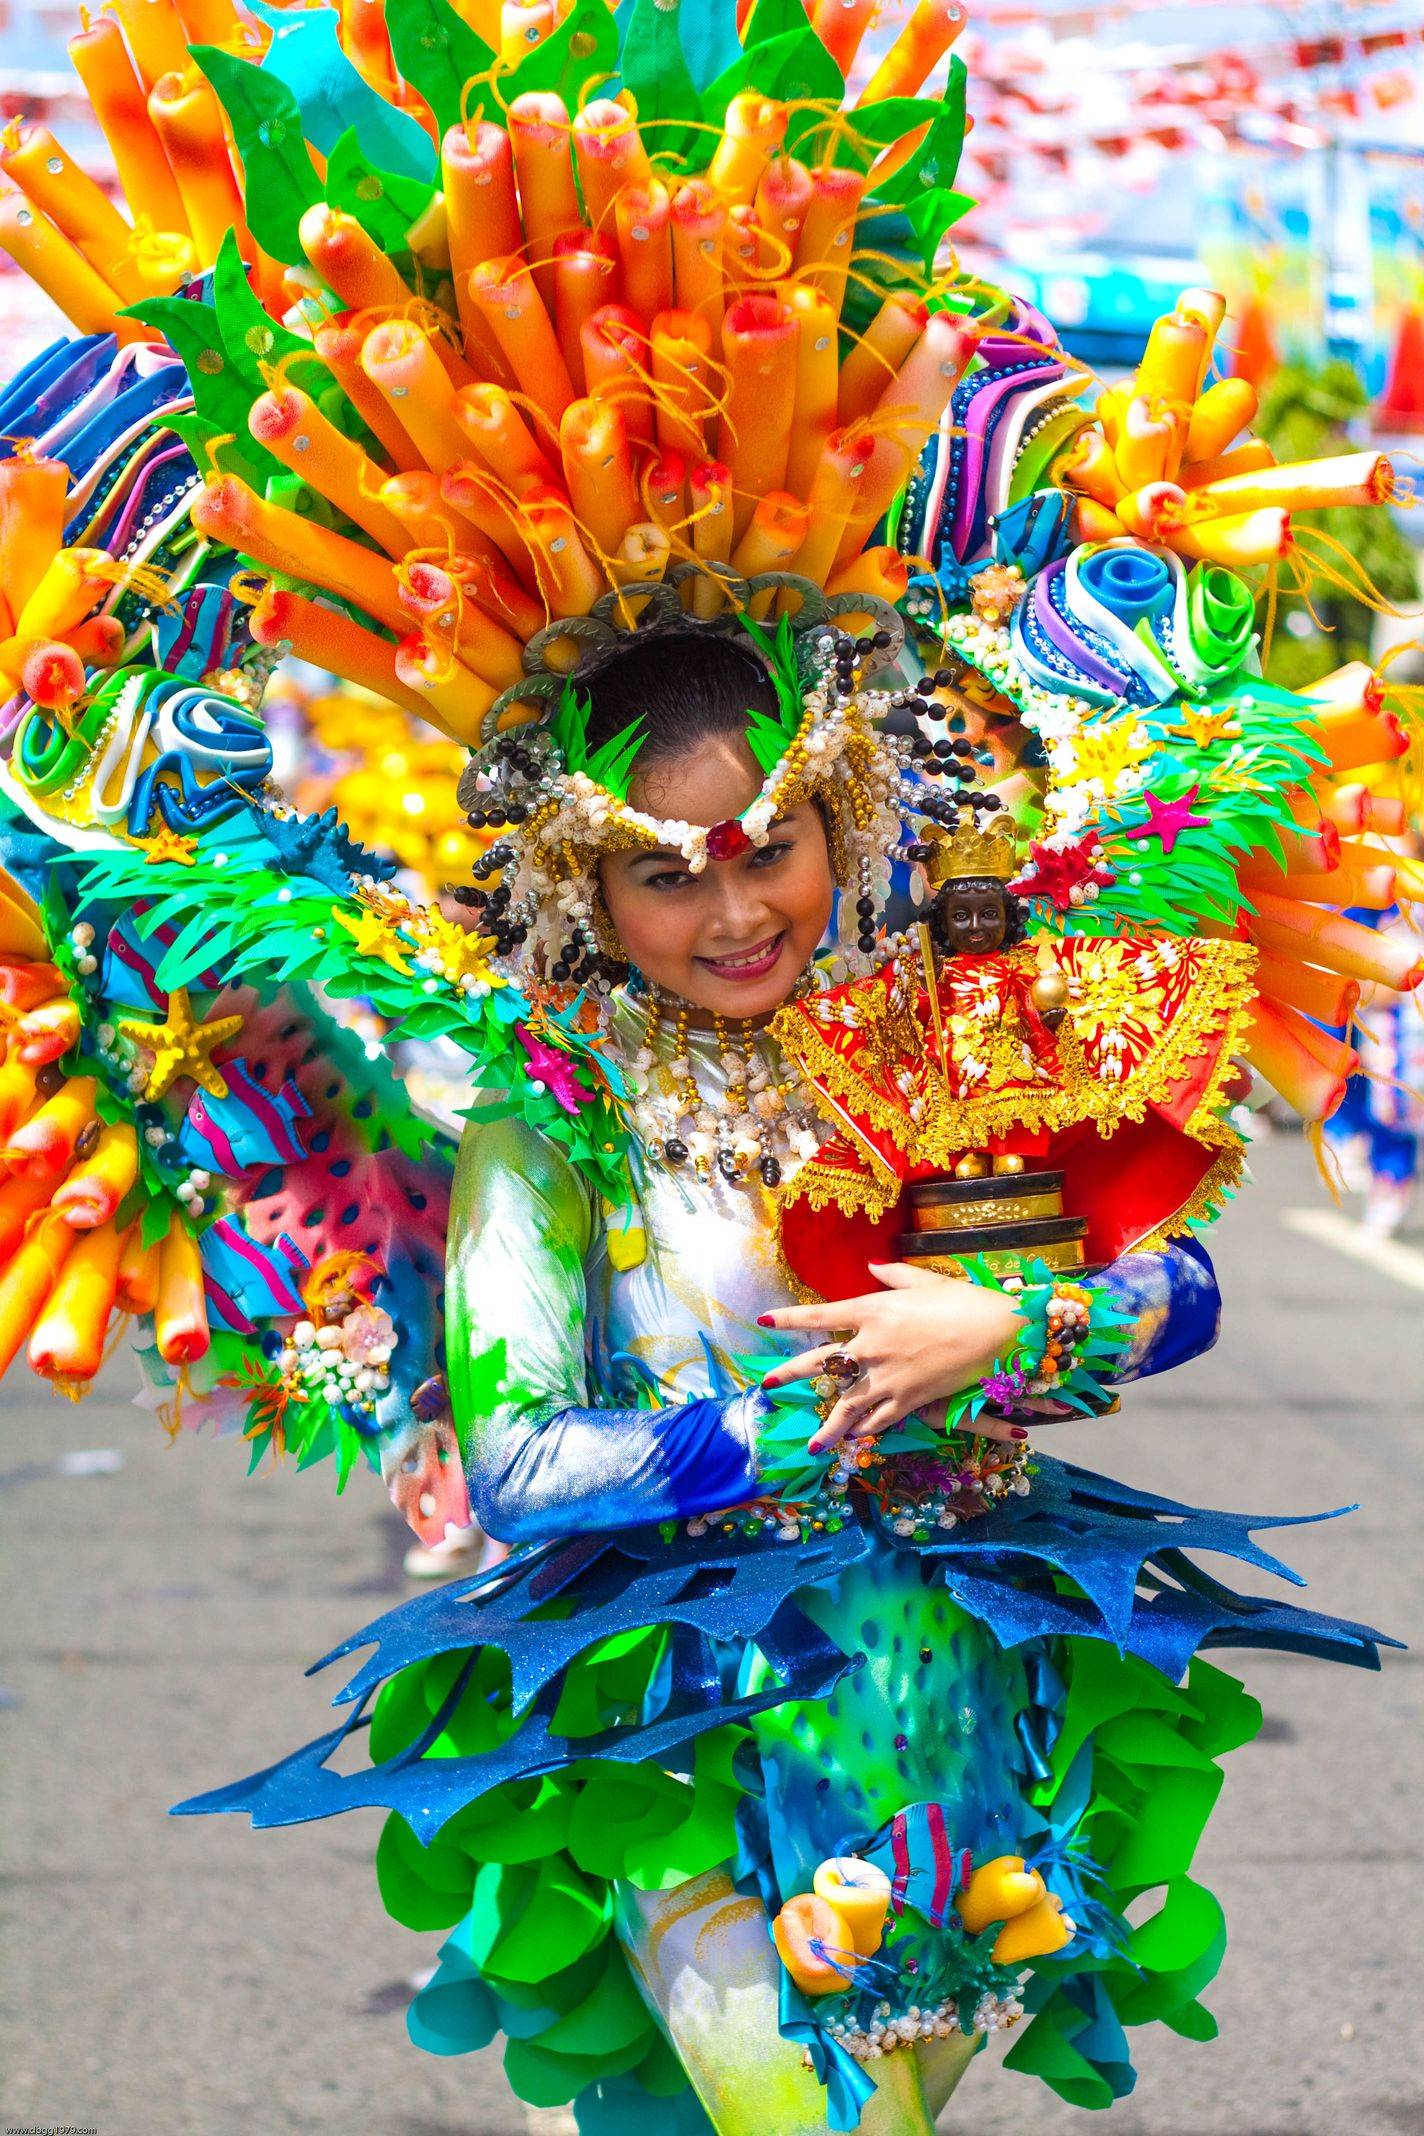 Woman in very colorful costume holding a small statue of the Infant Jesus during a festival parade